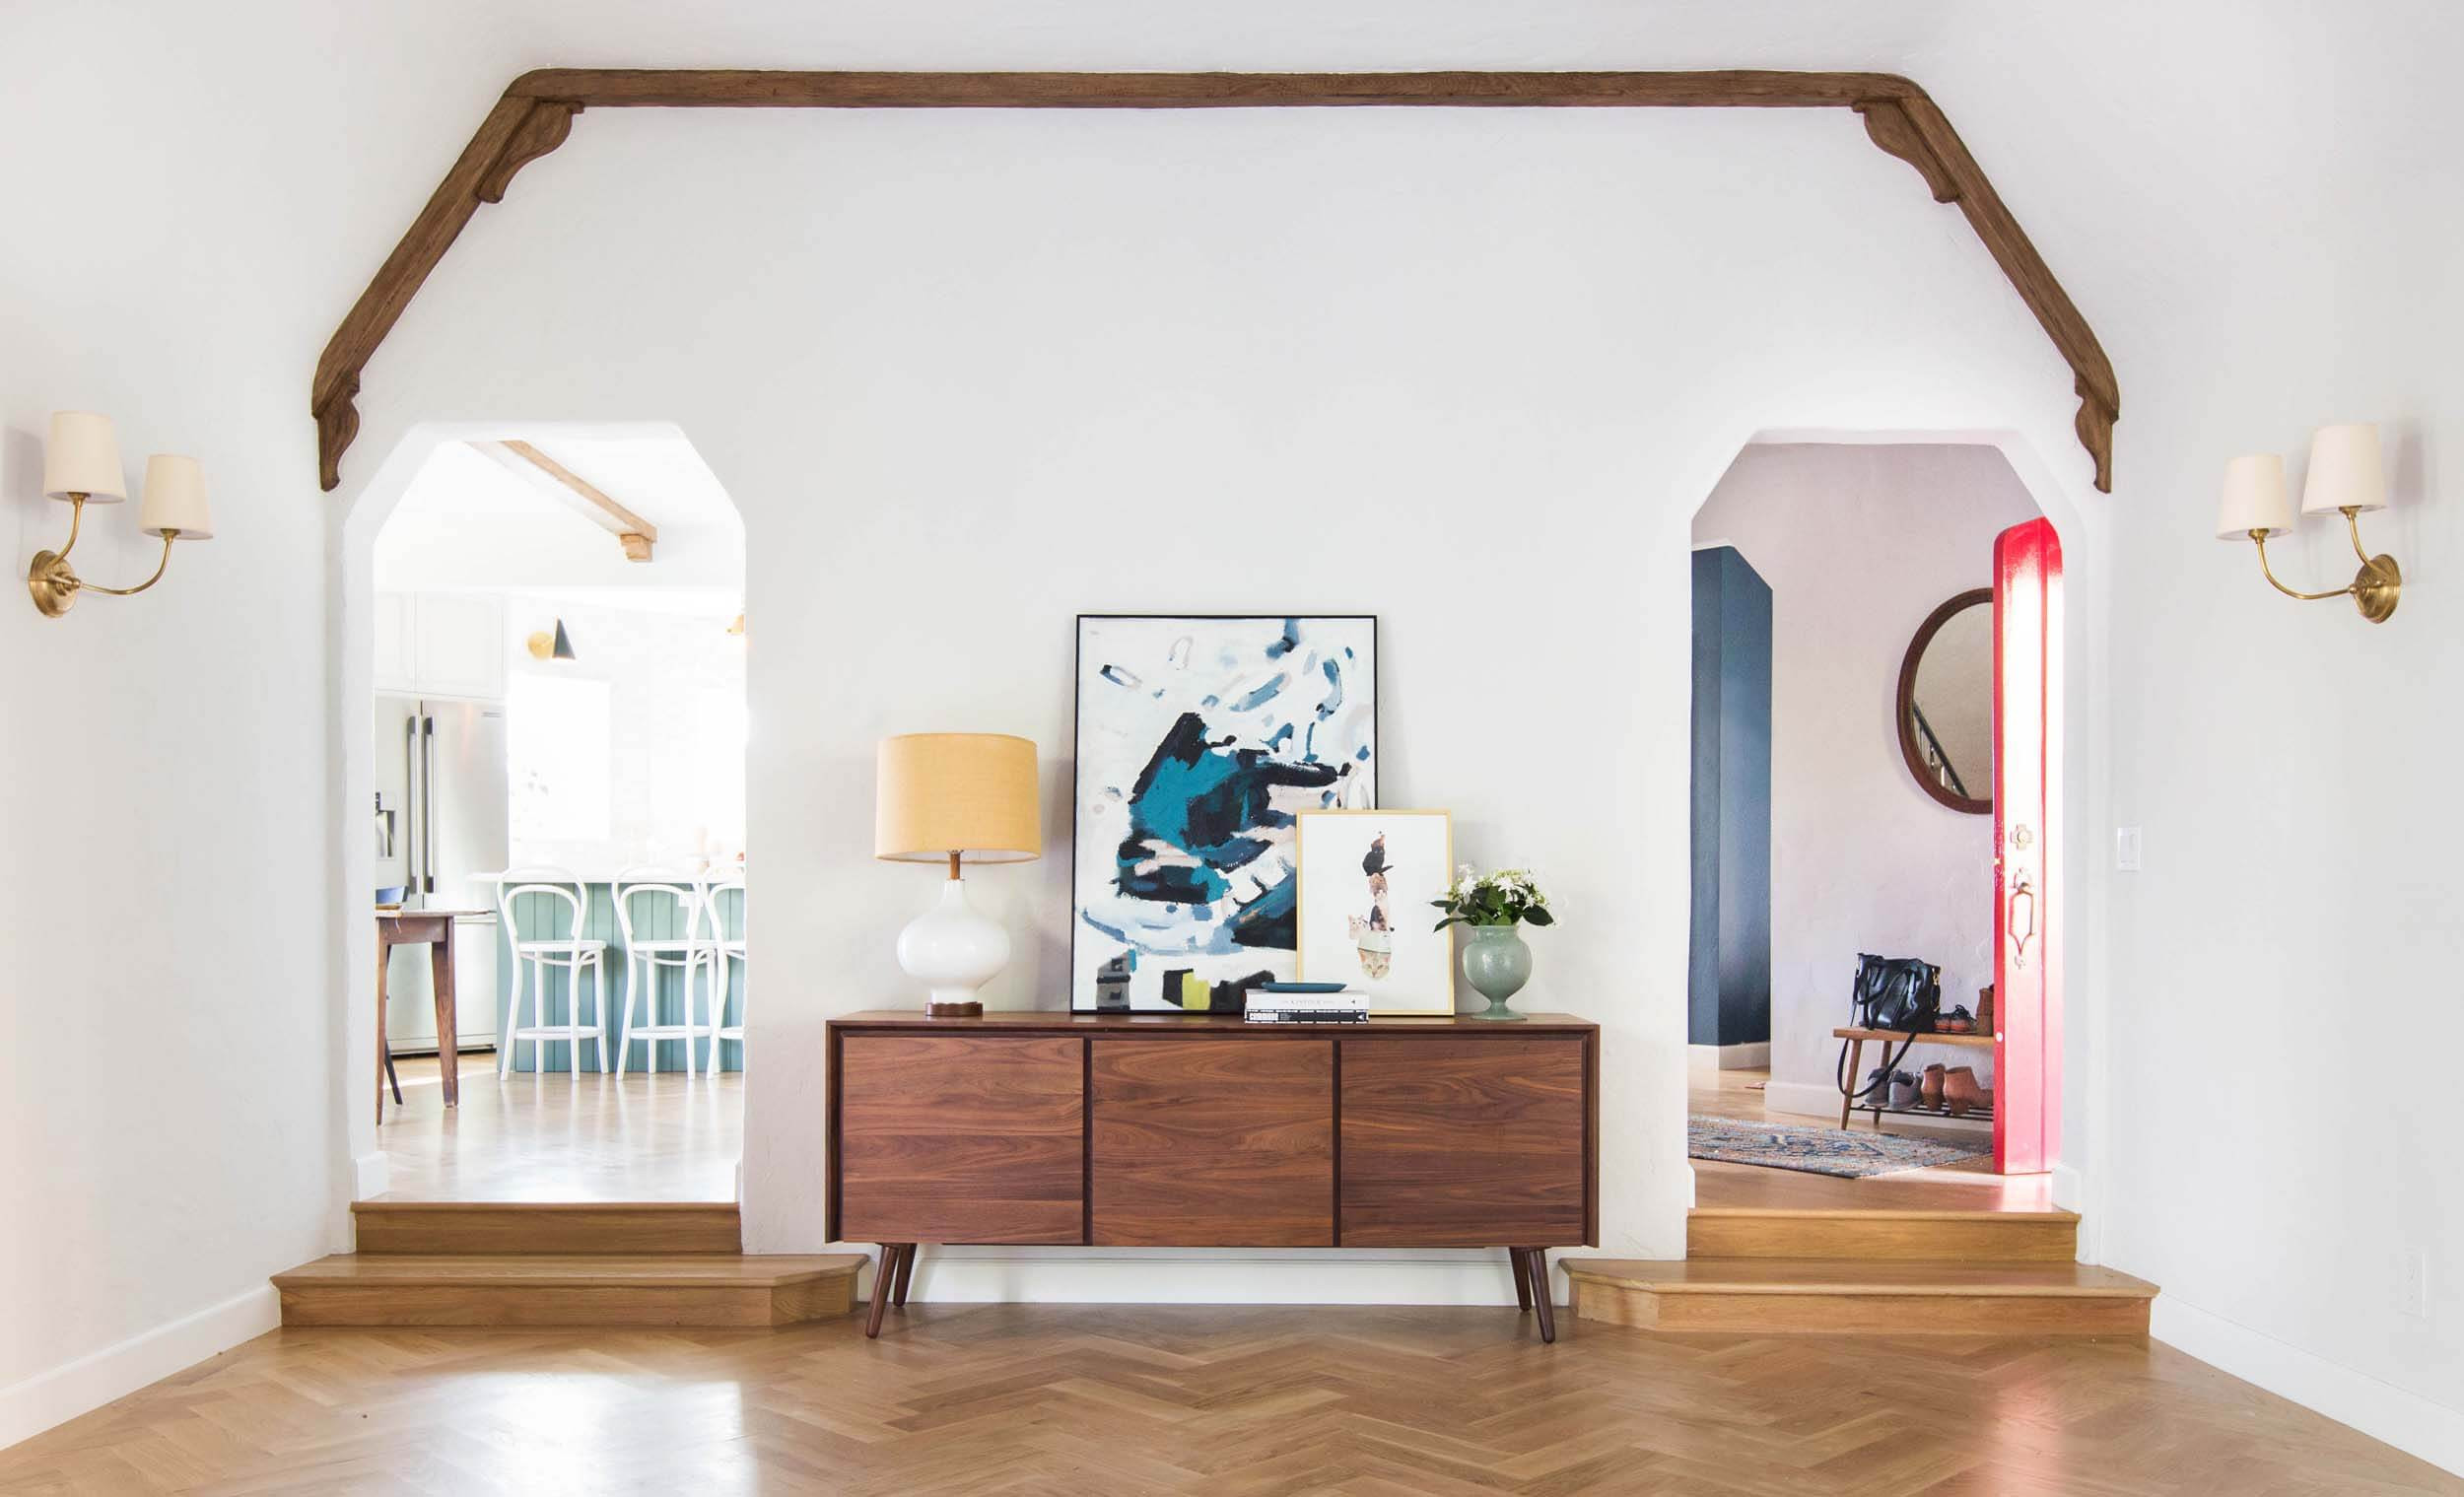 how much does it cost to refinish hardwood floors myself of how we refinished our wood beams emily henderson with regard to emily henderson home livingroom design wood naturally refinished beams 11